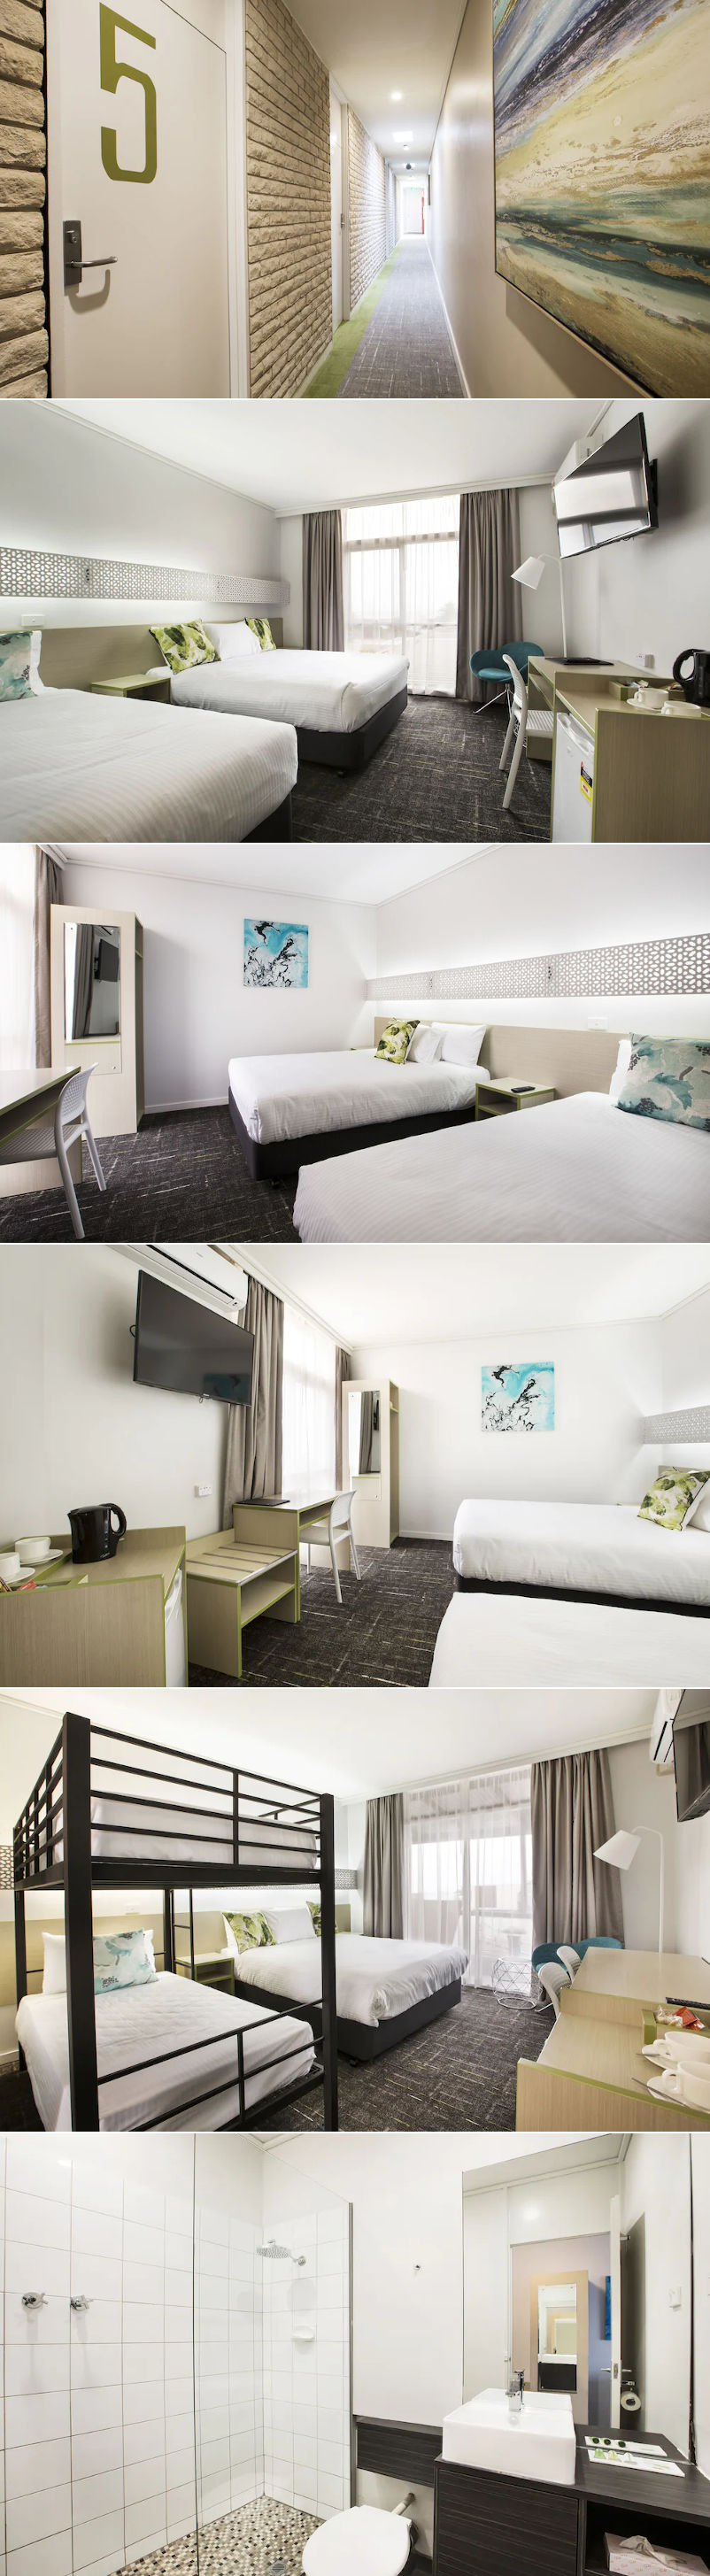 Sandringham Hotel - Rooms